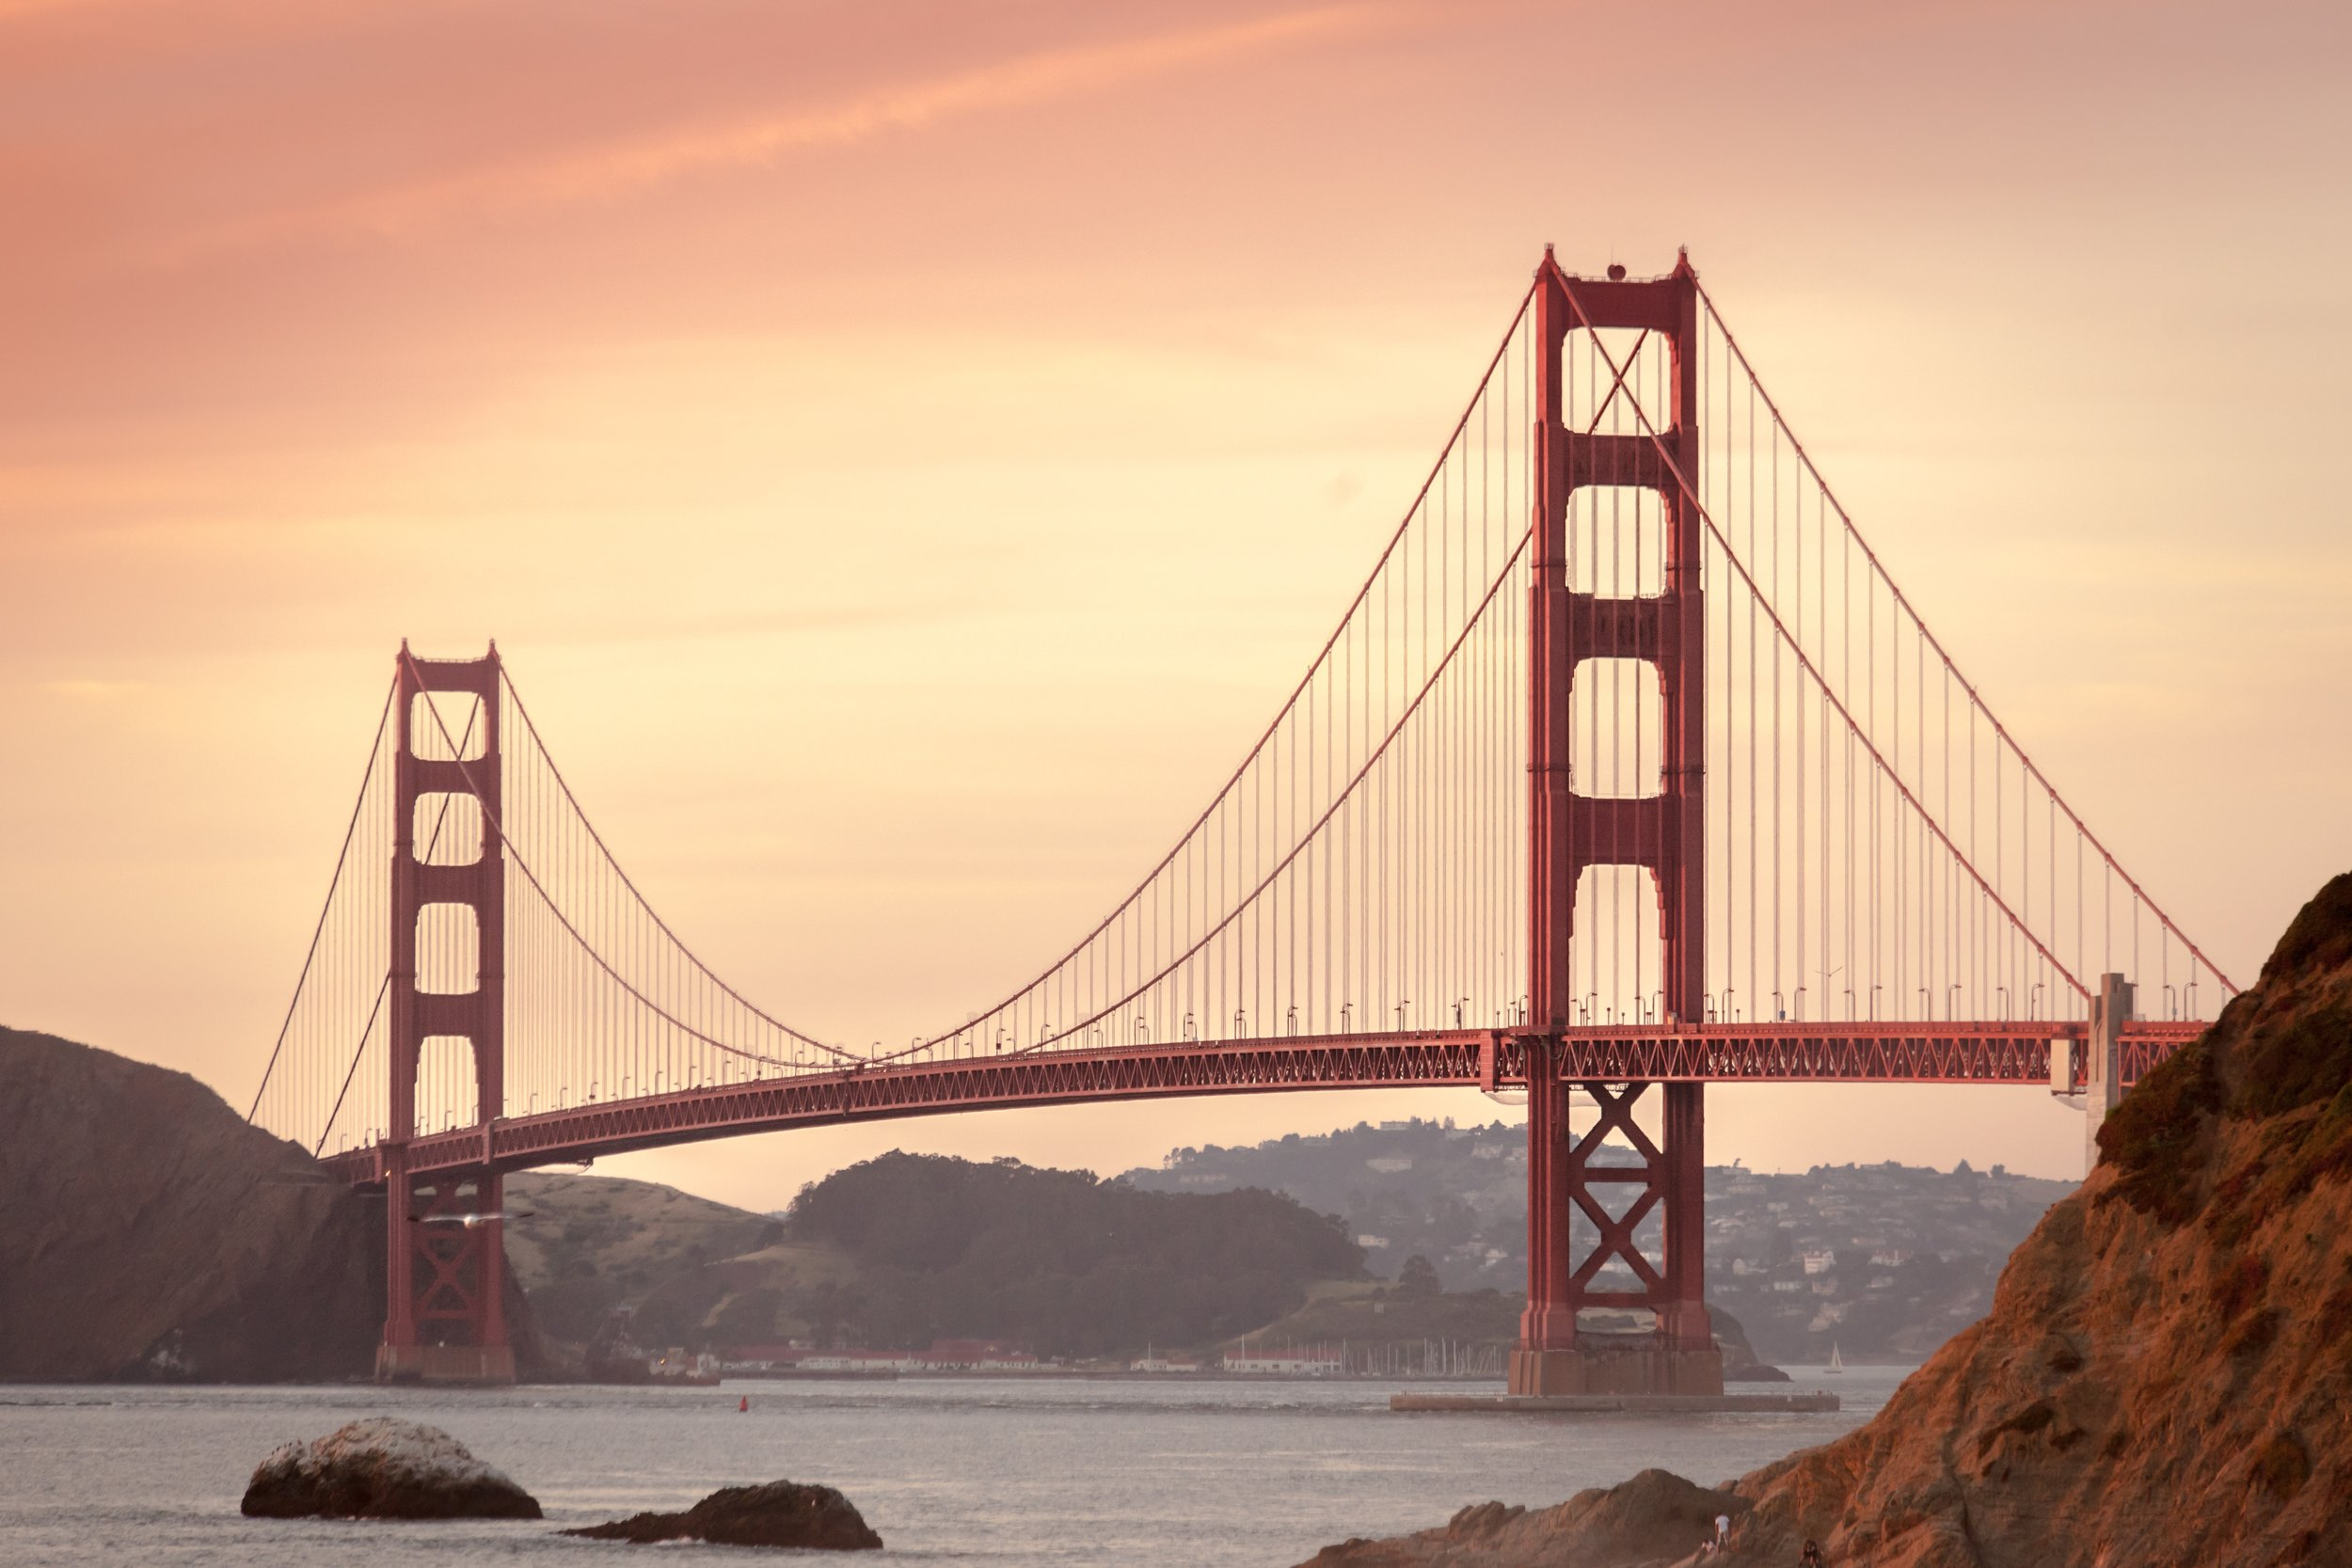 Did you know a special bacteria was found right here in San Francisco? -